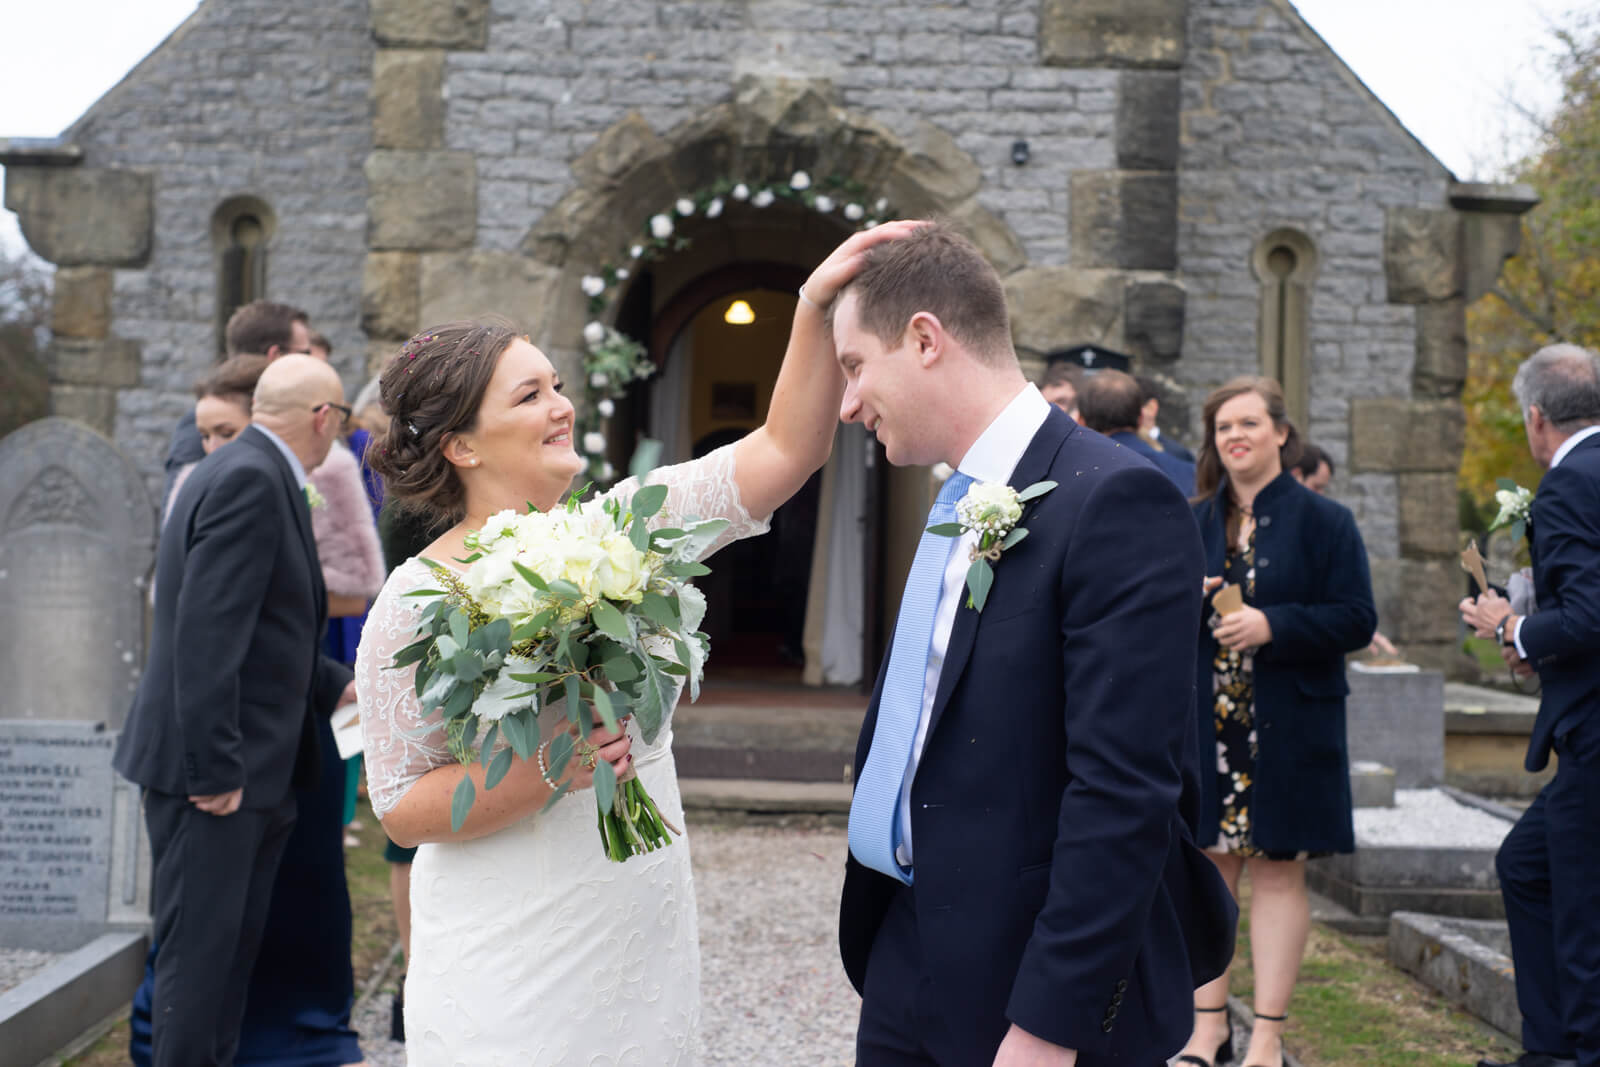 Bride brushes confetti from the grooms hair outside the chapel